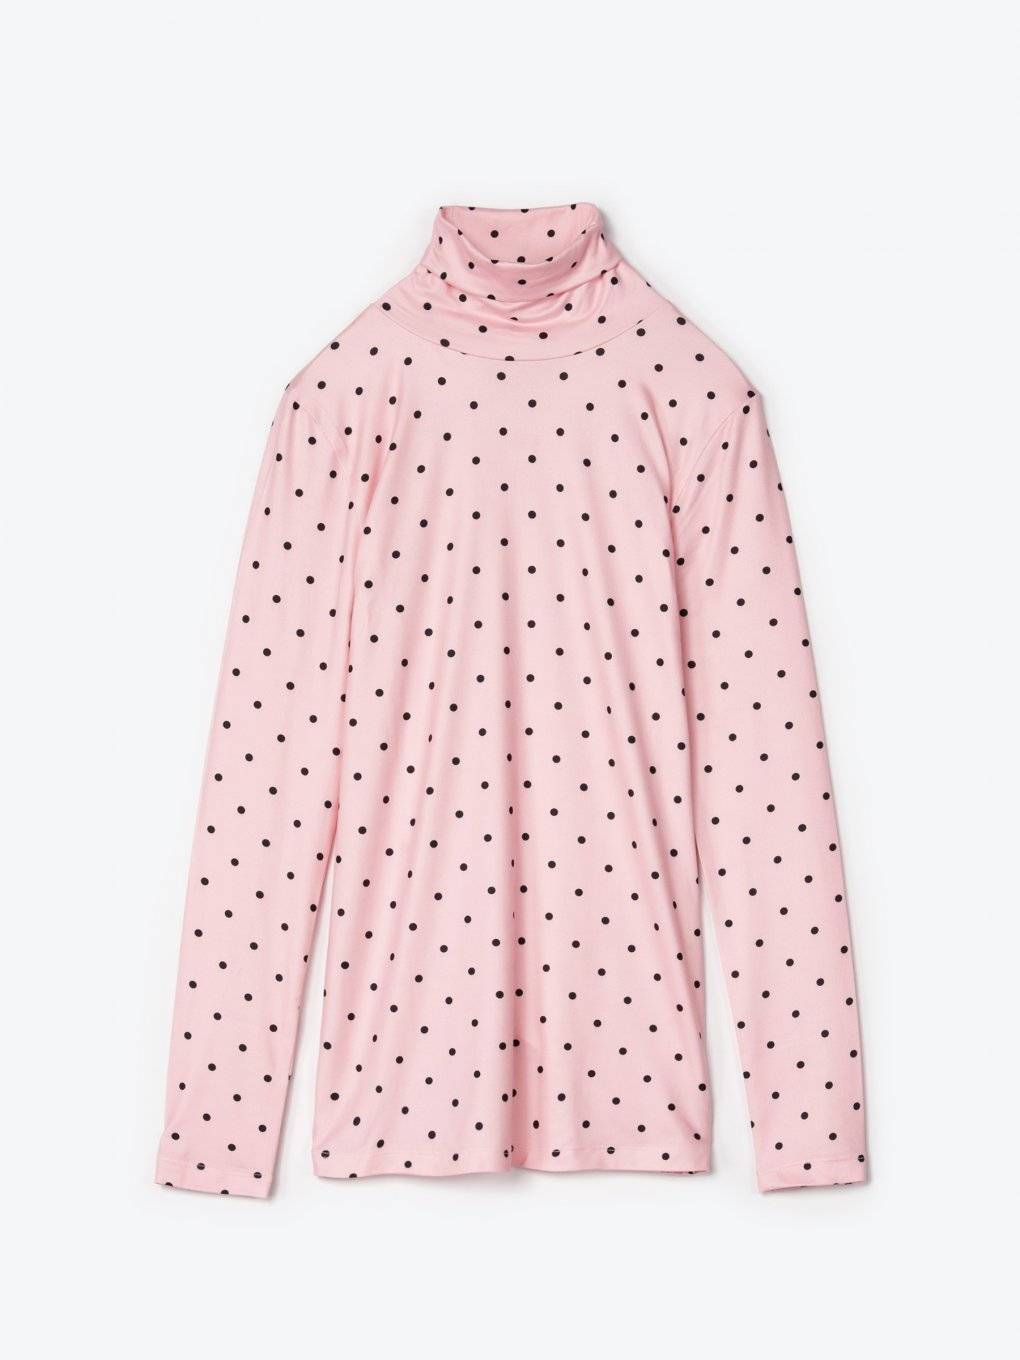 Polka dot print turtleneck t-shirt